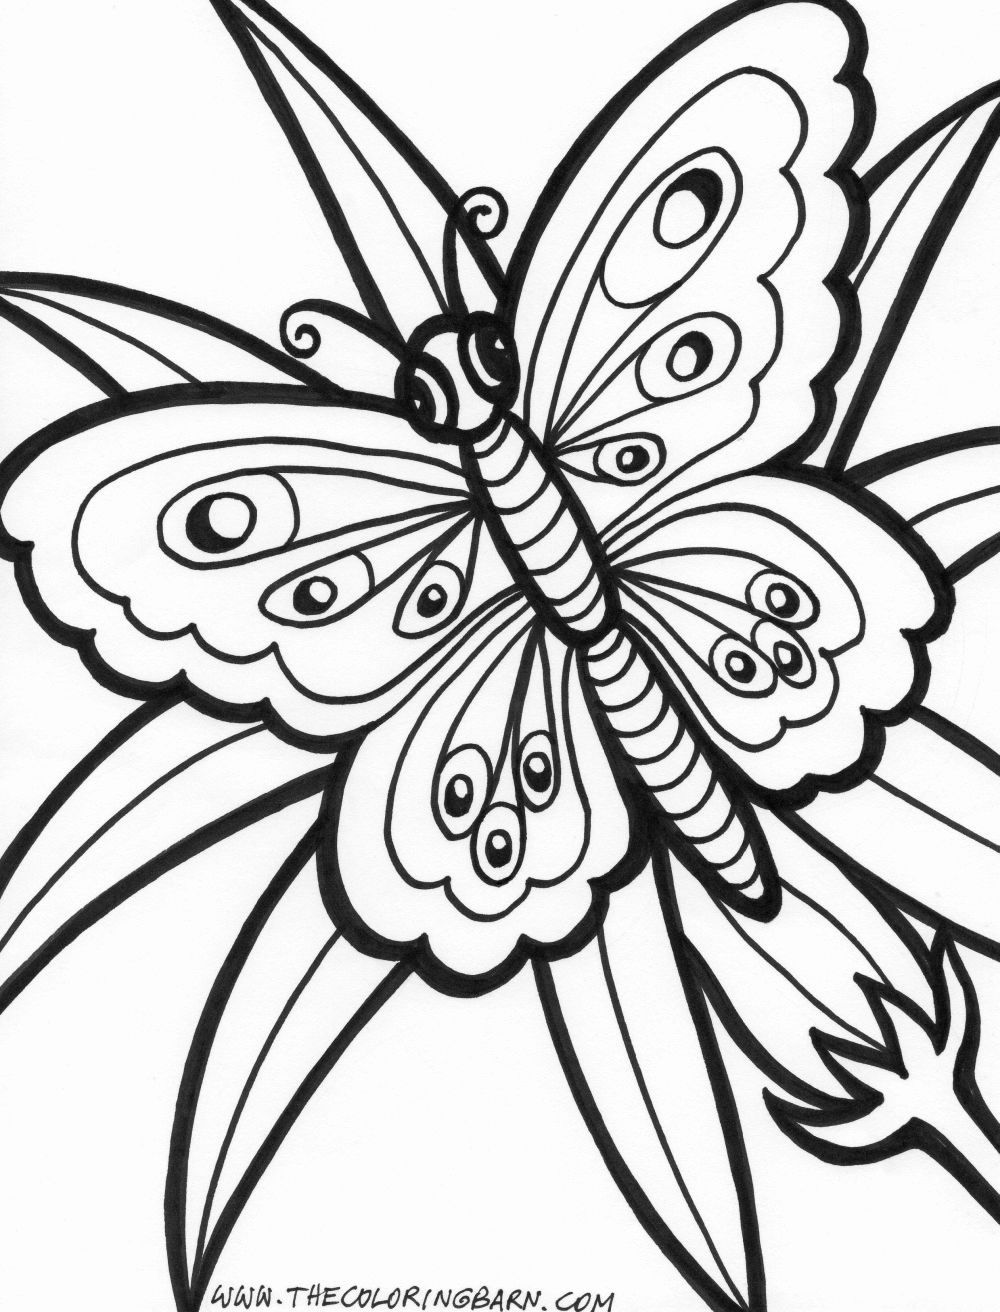 Free Printable Summer Flowers Coloring Pages Beautiful Summer Flowers Printable C In 2020 Animal Coloring Pages Butterfly Coloring Page Printable Flower Coloring Pages